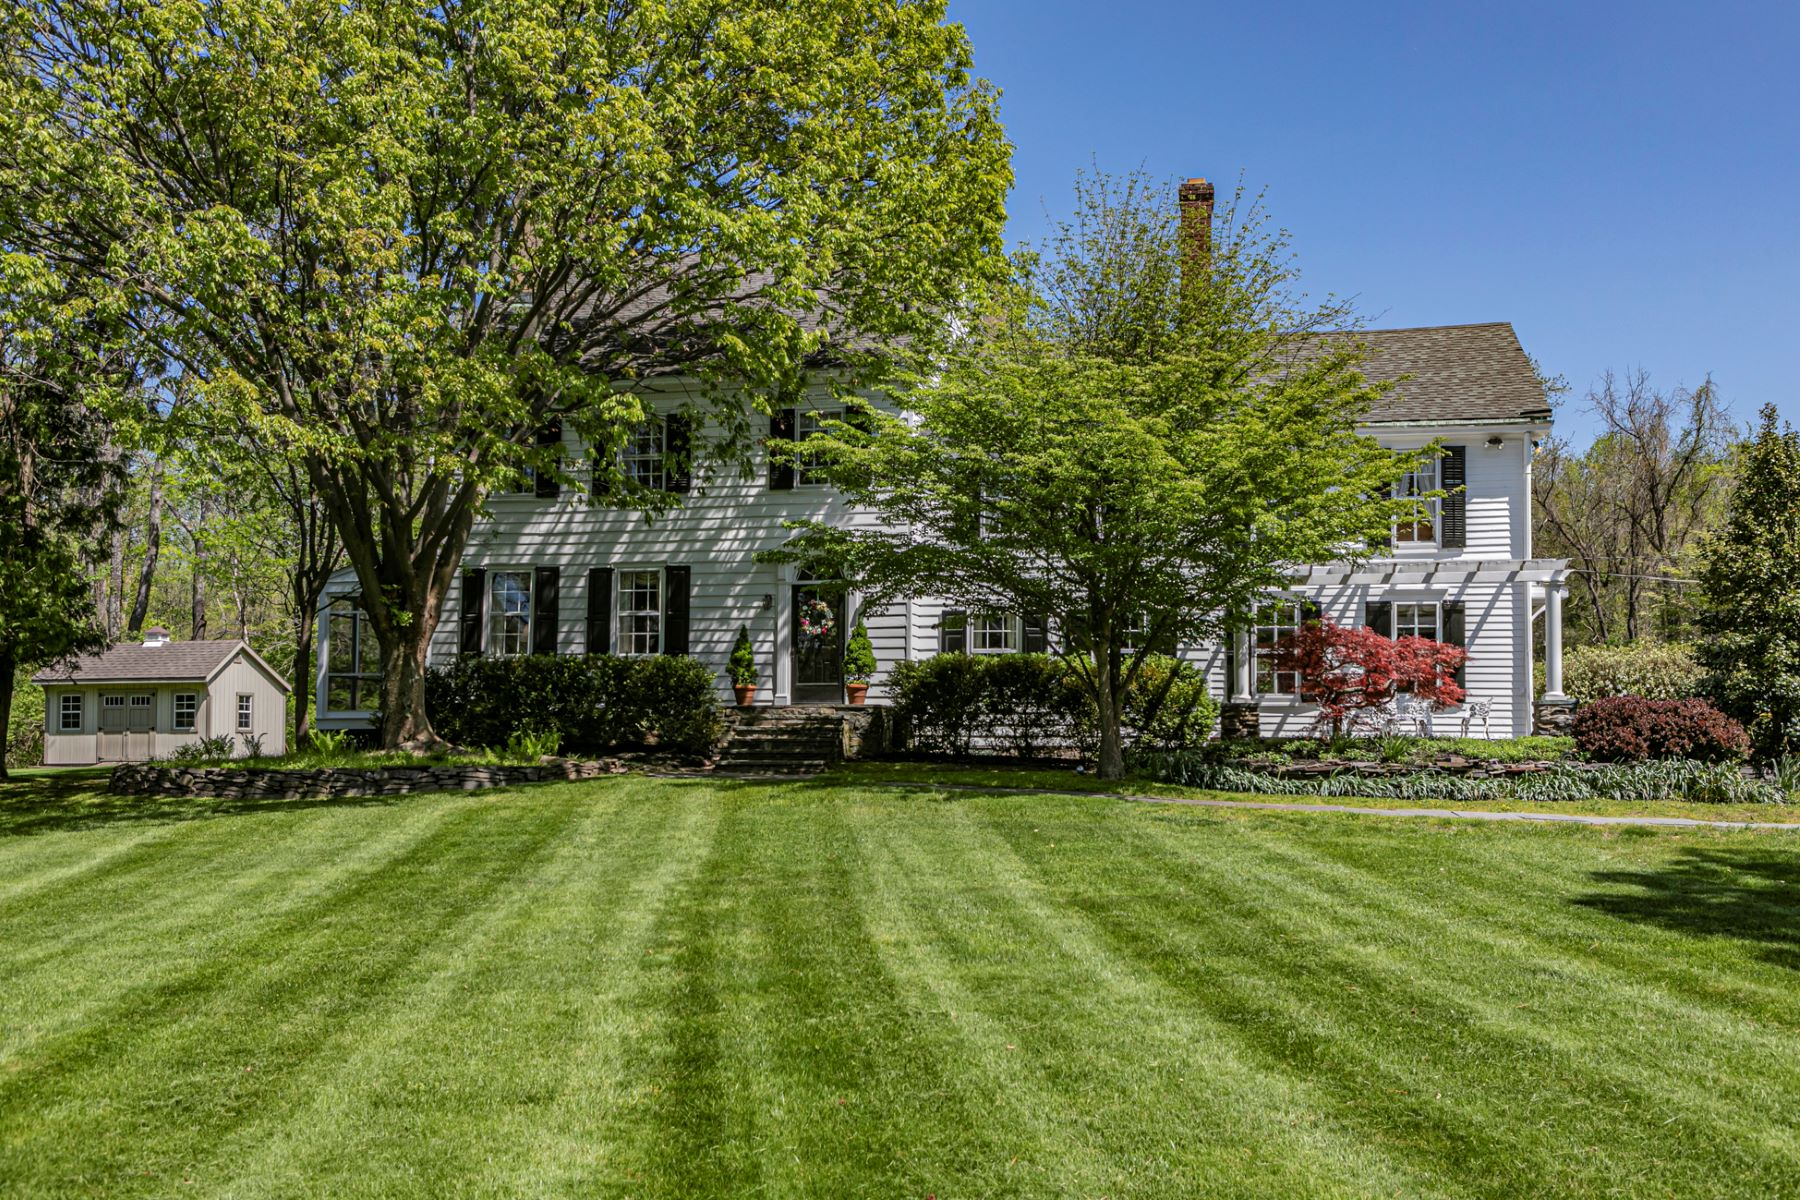 Single Family Homes for Sale at Historic Farmhouse On Picturesque Grounds 41 Van Dyke Road, Princeton, New Jersey 08540 United States